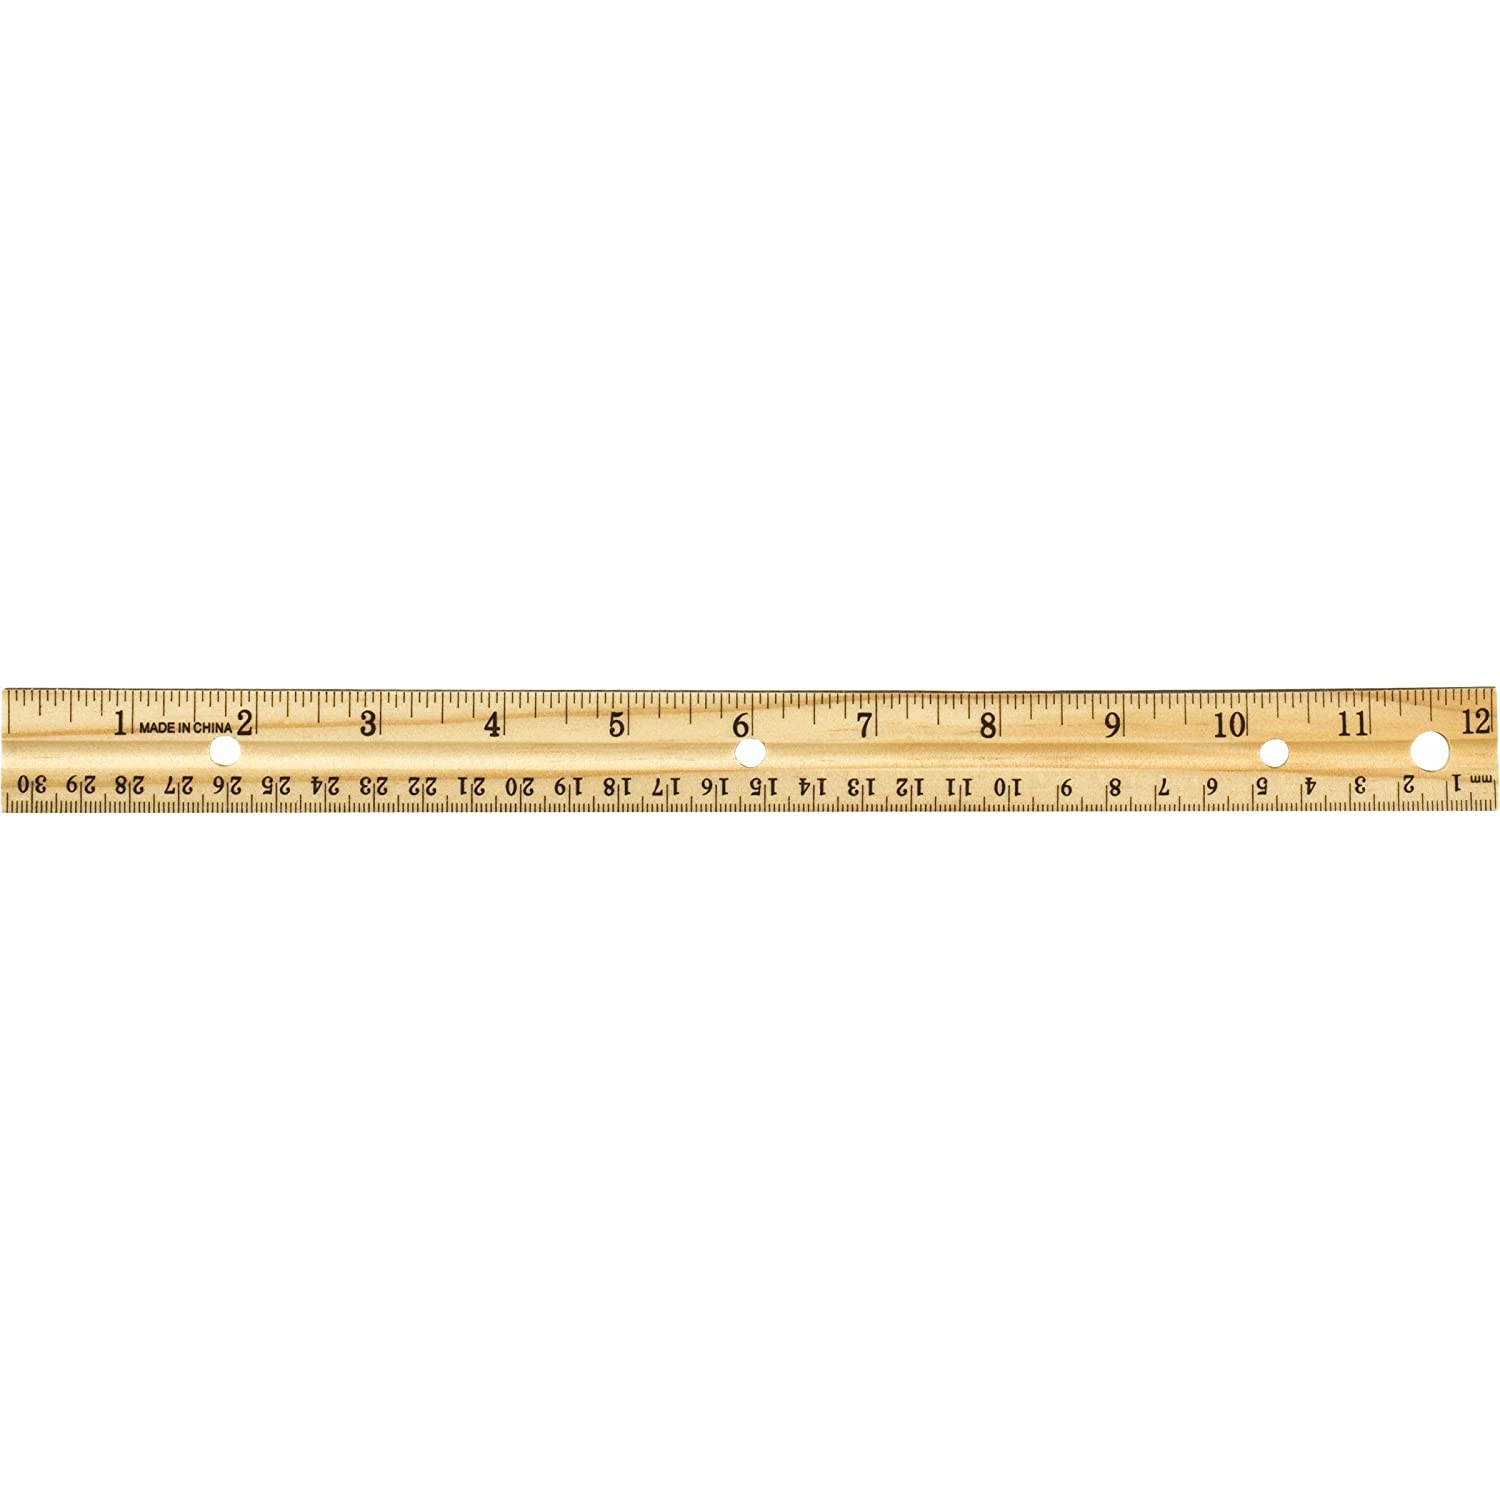 Officemate OIC 12-Inch Wood Ruler, Box of 12 (66009) Officemate International